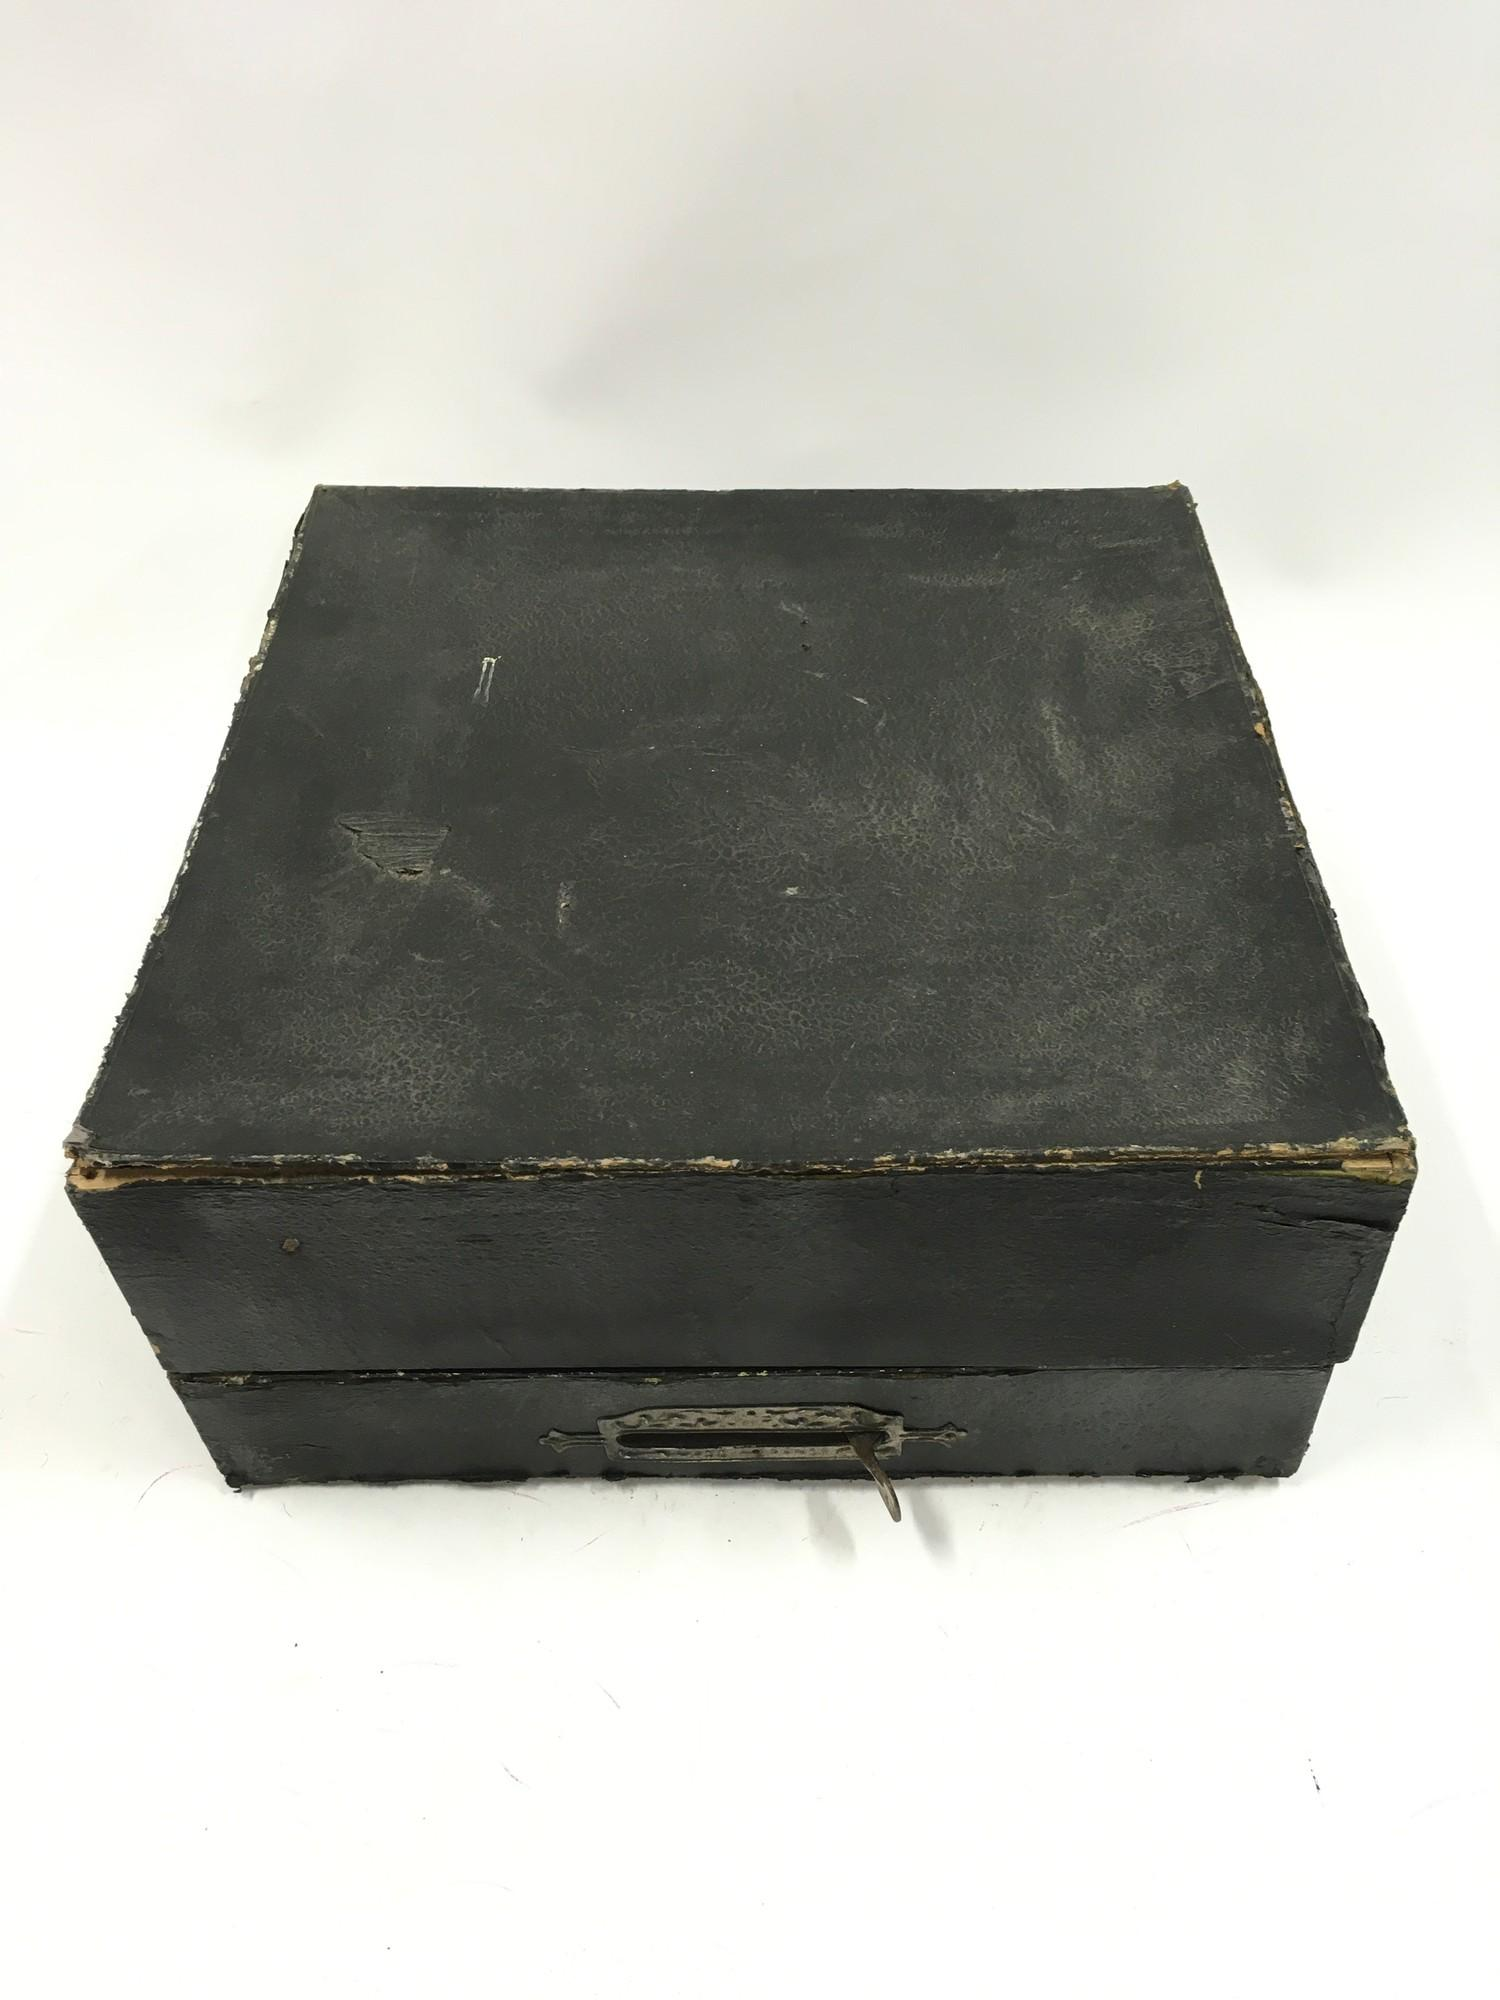 French horse racing game - Approx 1920?s boxed. - Image 3 of 3